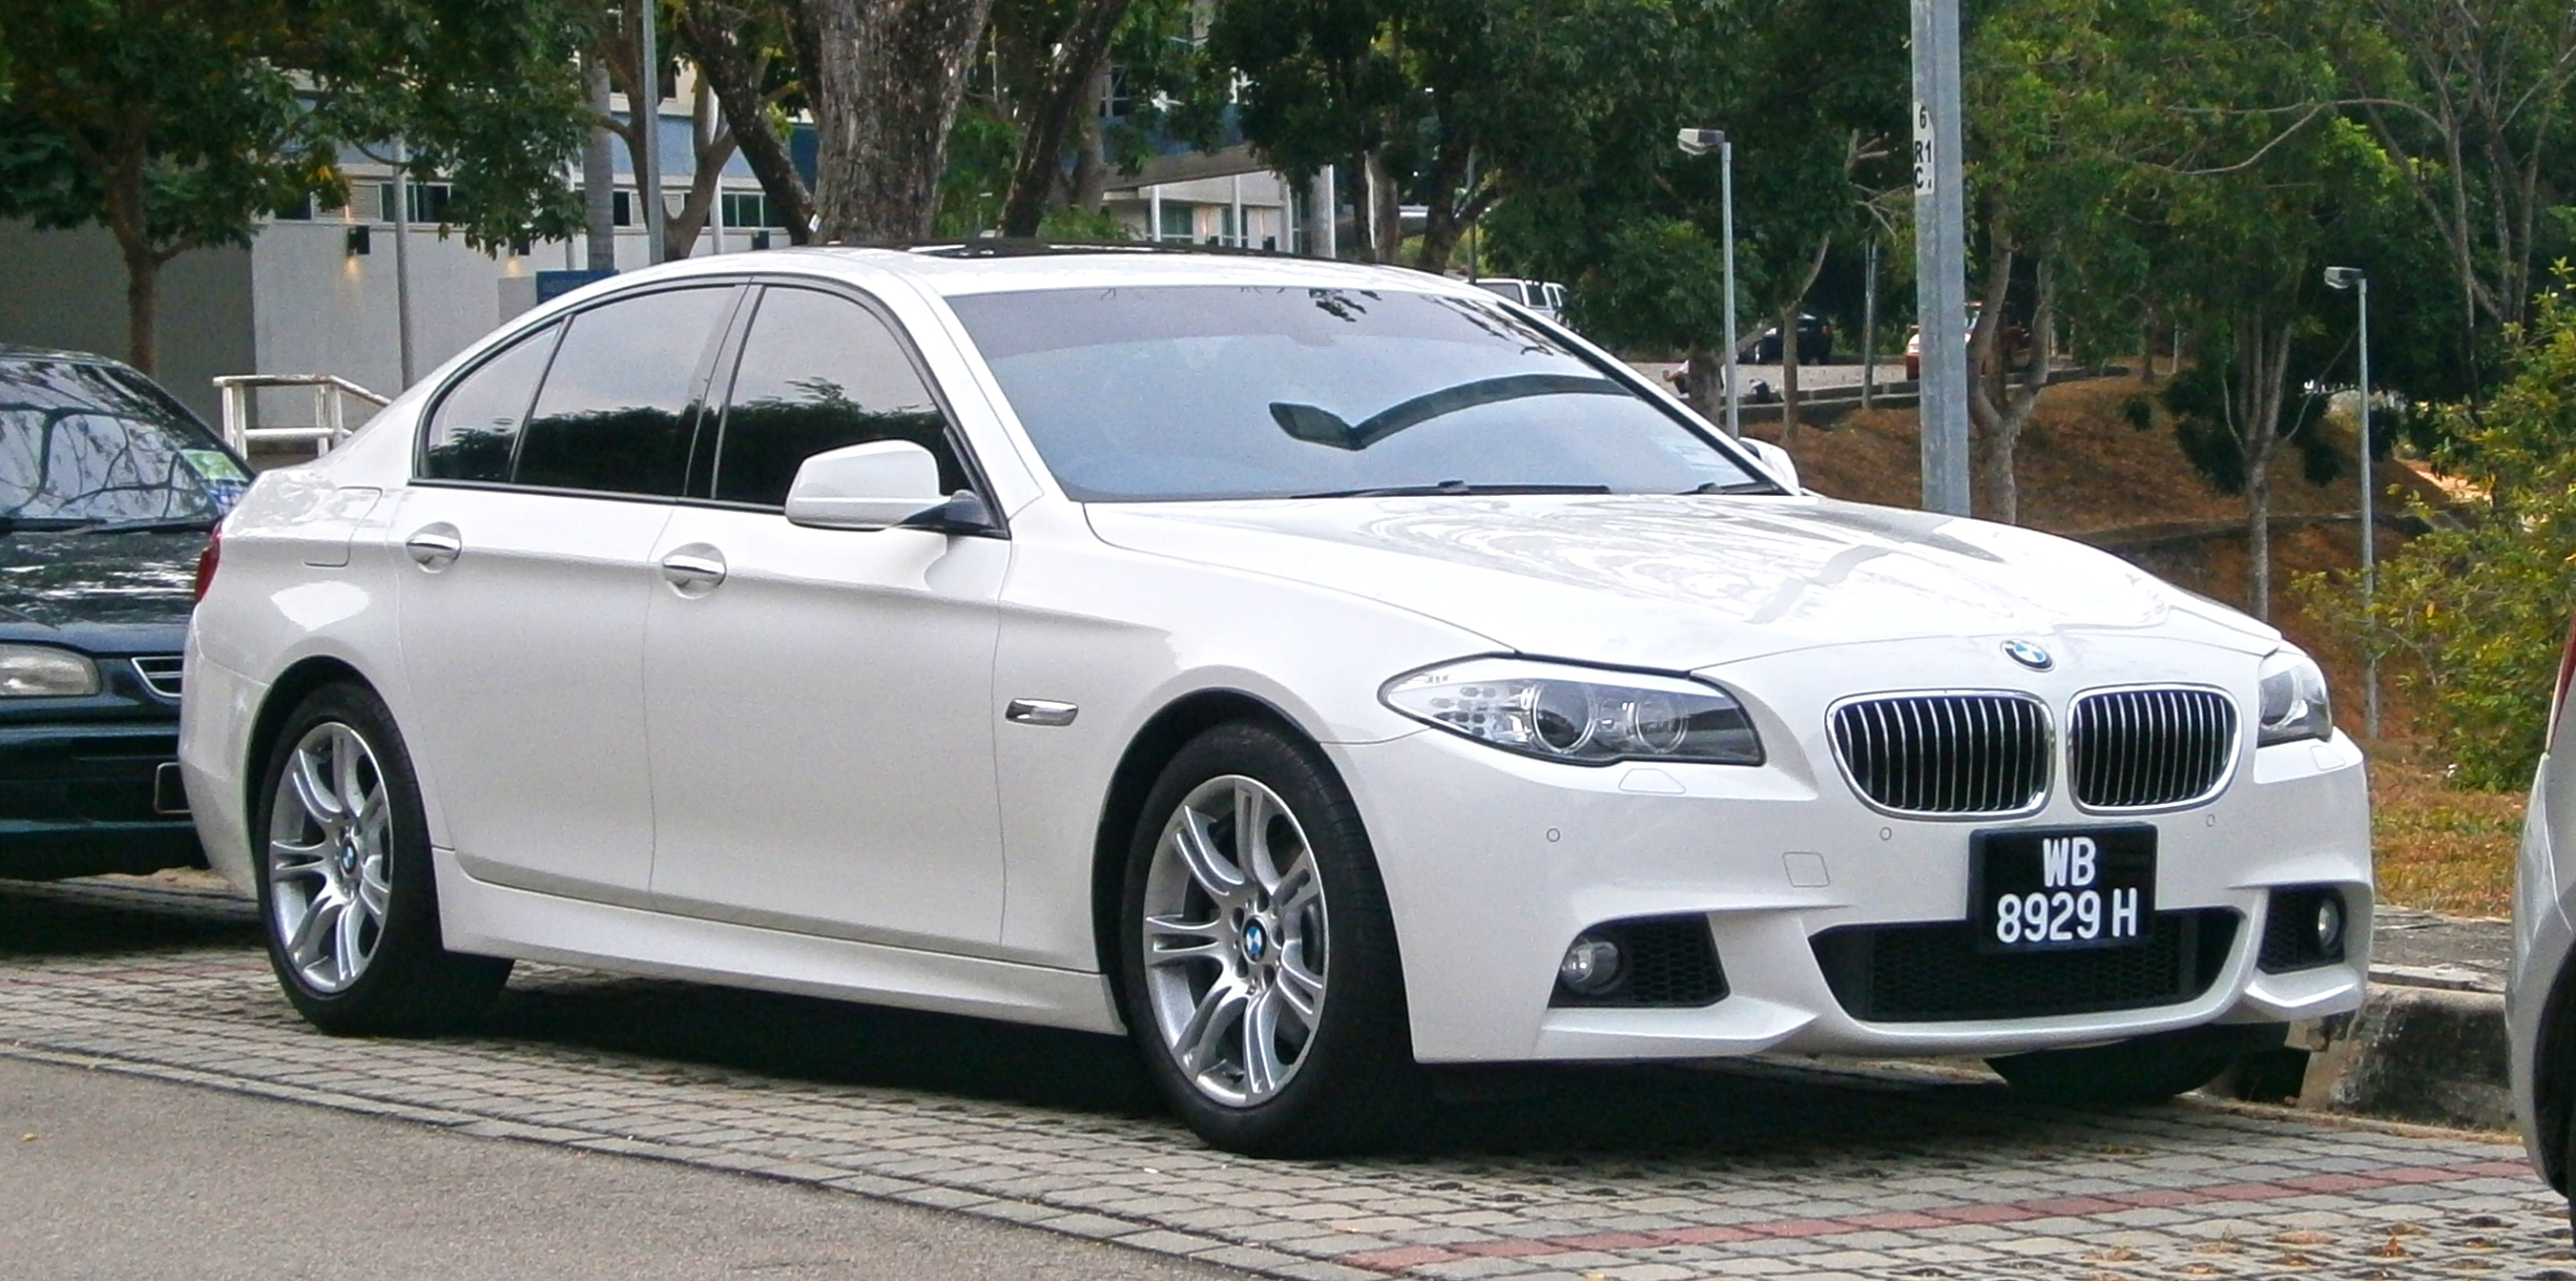 Inokom has assembled BMW models since 2008.